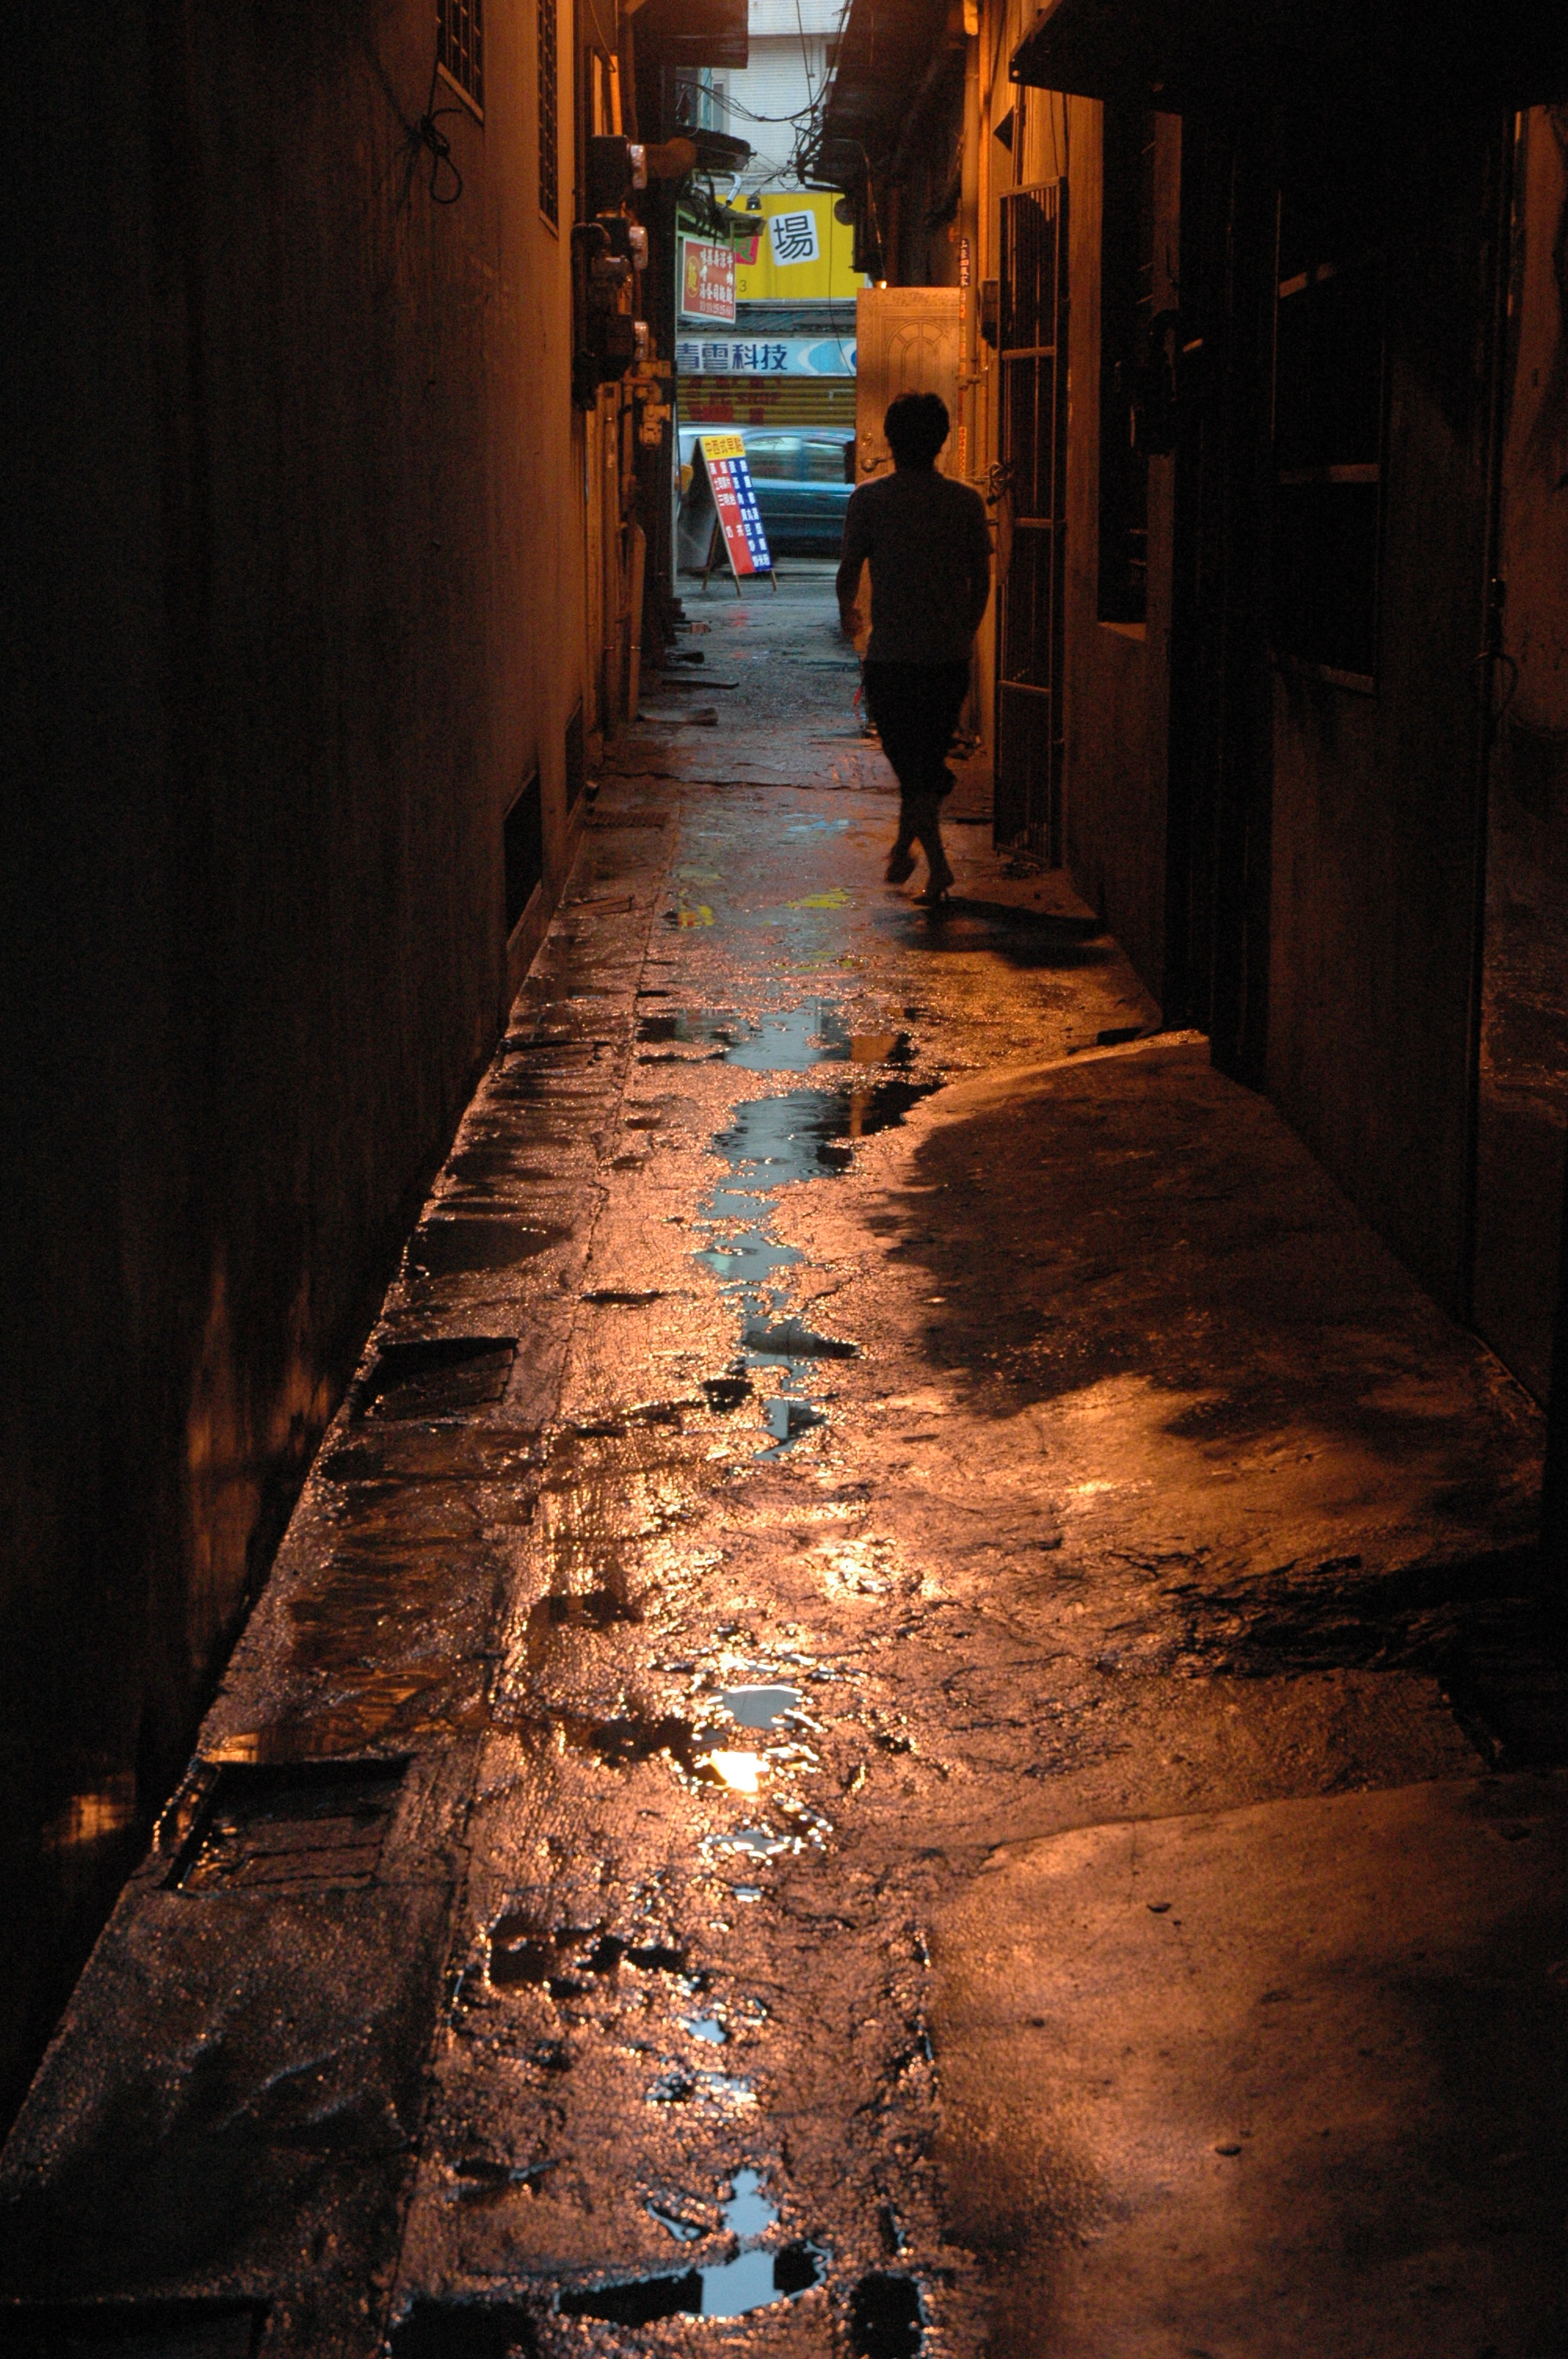 200407191812_Lighted_Alley_in_the_rain